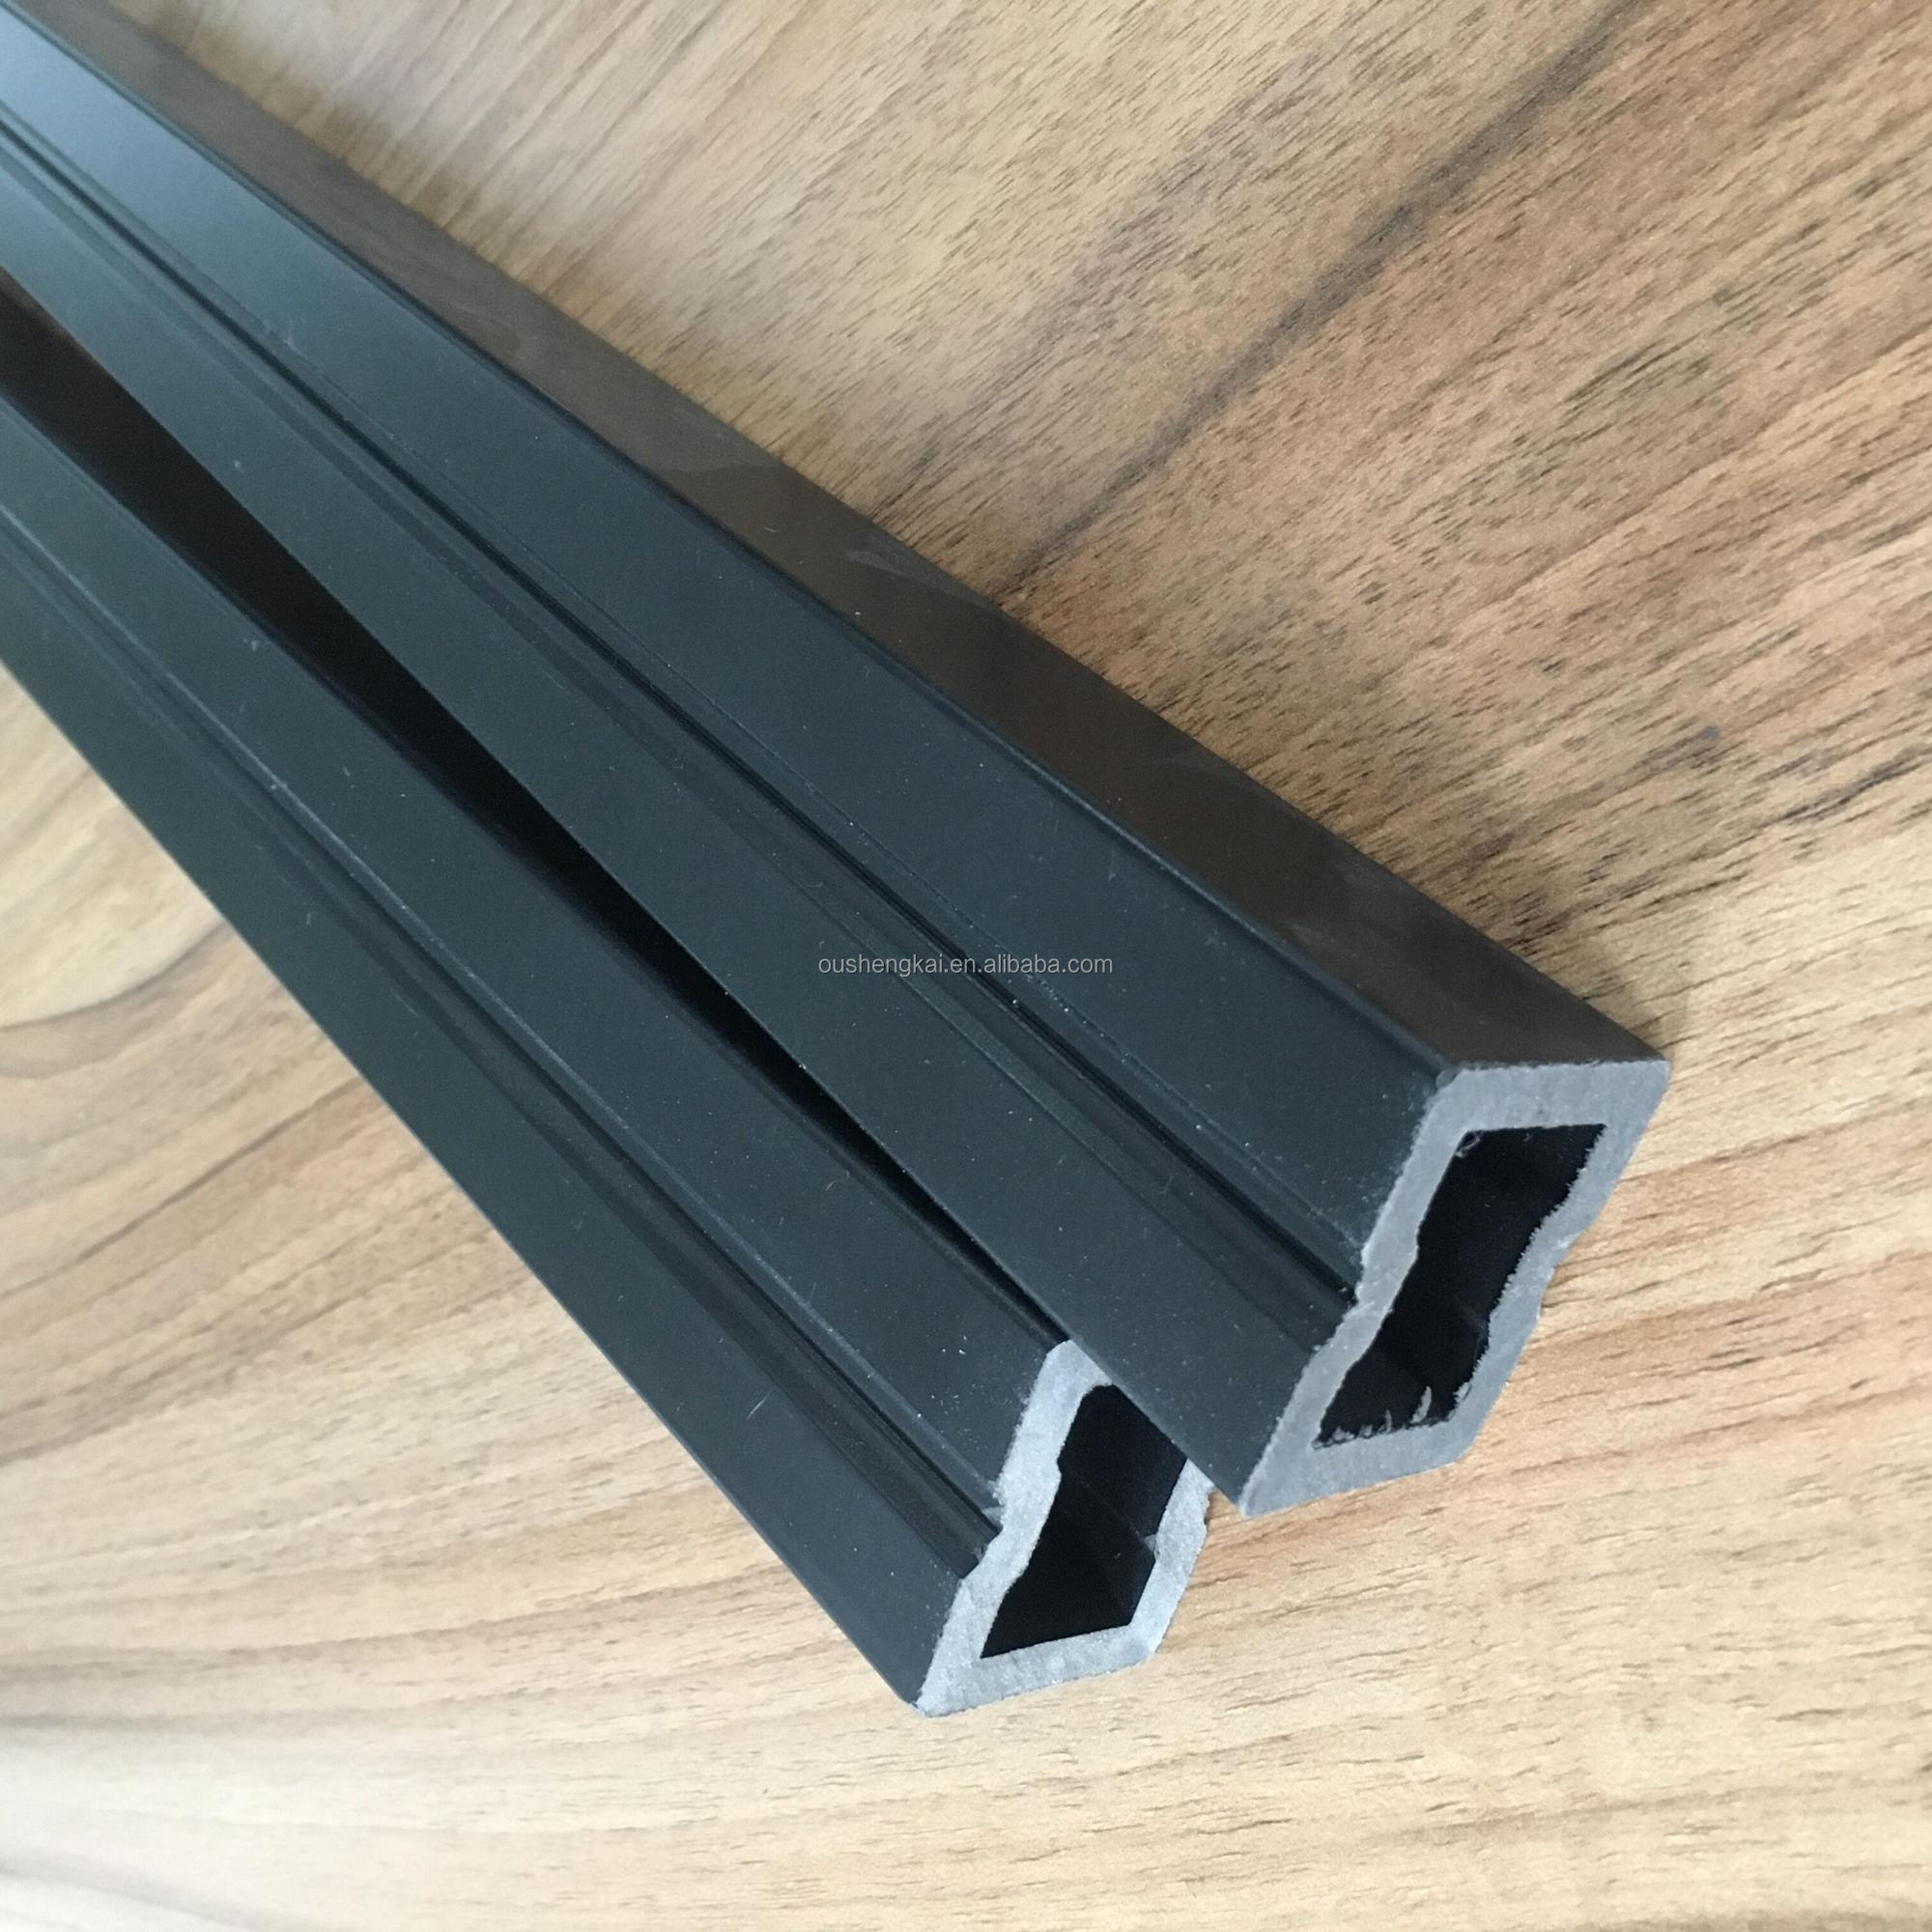 WPC ACCESSORIES JOIST HOLLOW 40X30MM FOR WPC INSTALLATION